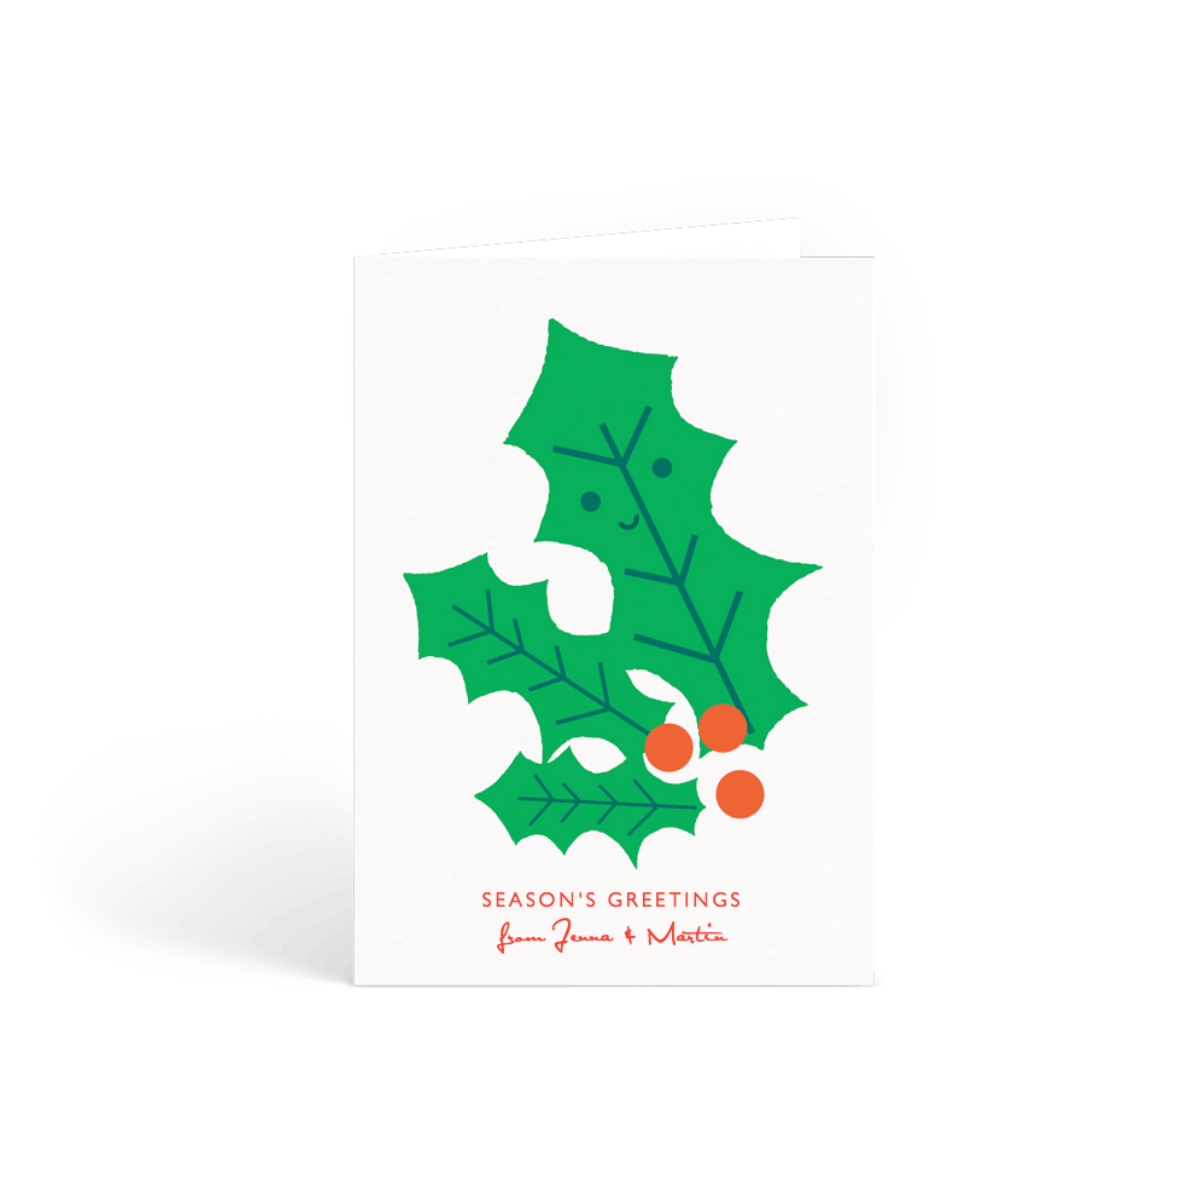 Https%3a%2f%2fwww.papier.com%2fproduct image%2f14303%2f2%2fhappy holly 3821 front 1501749178.png?ixlib=rb 1.1